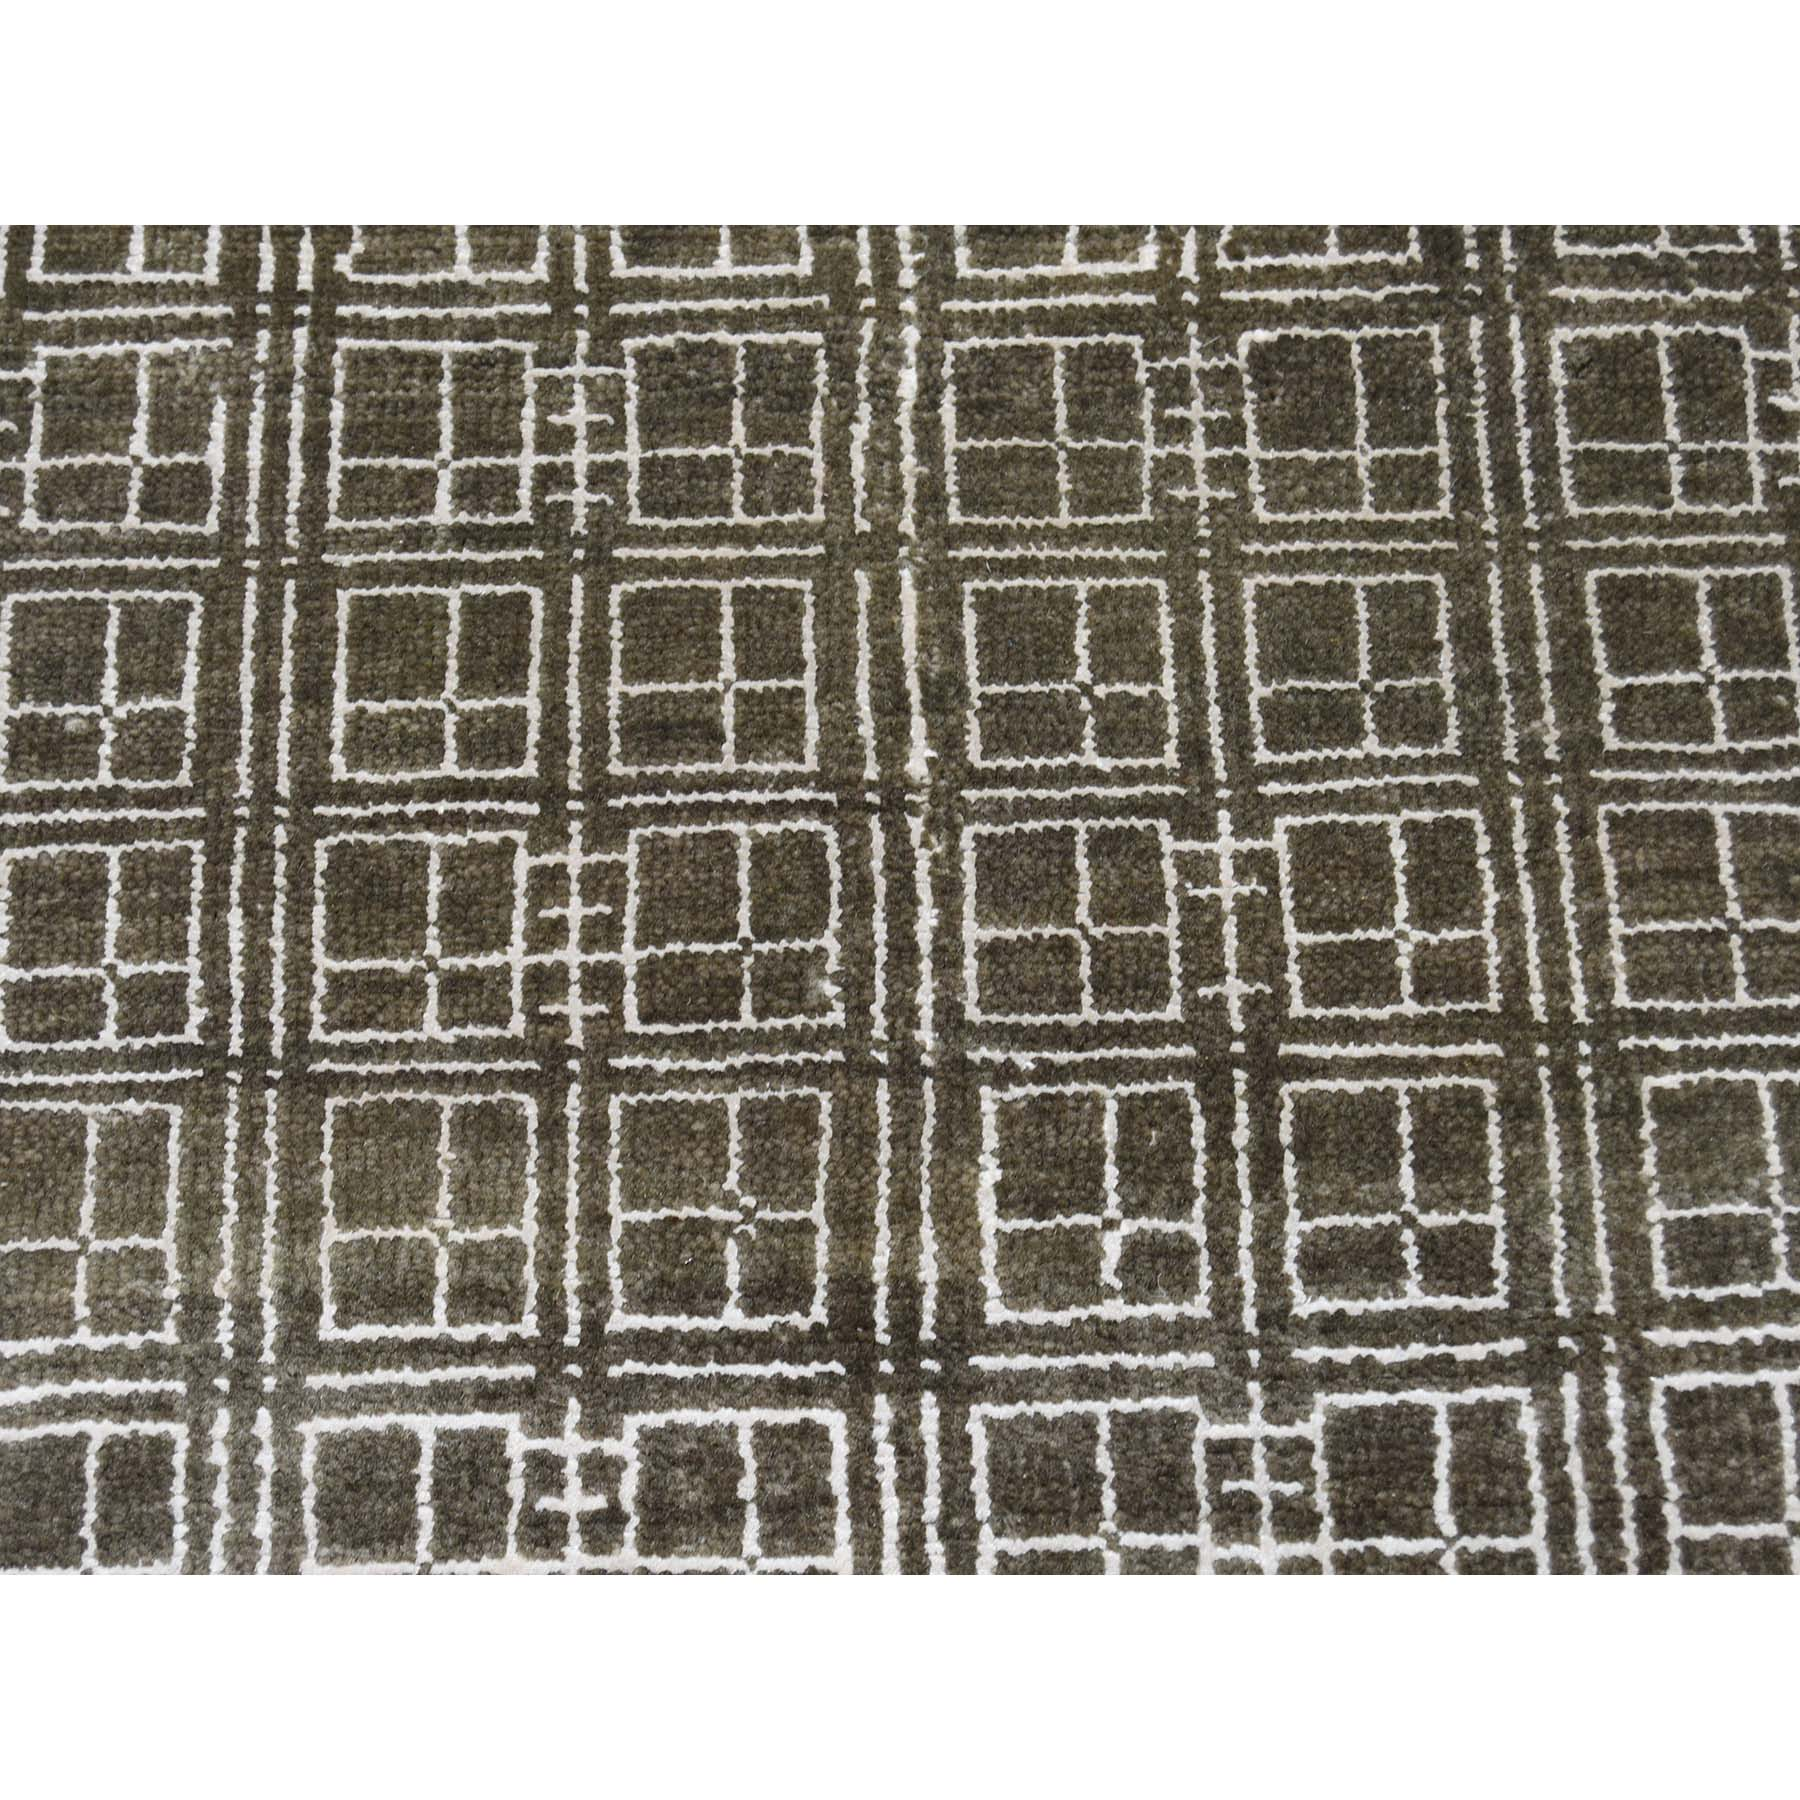 8-1 x9-9  Box Design Wool And Silk Chocolate Brown Hand-Knotted Rug